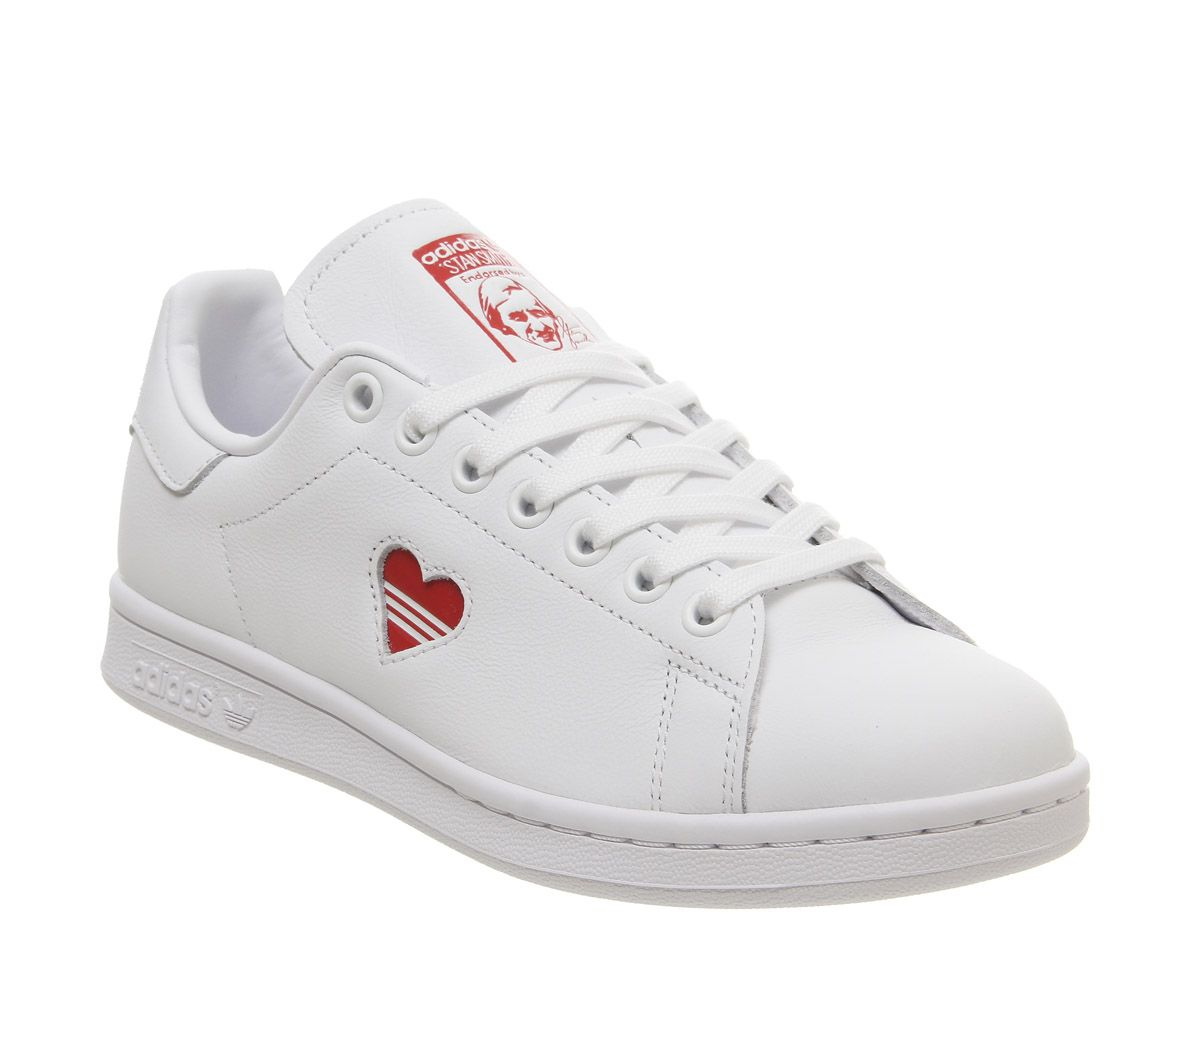 outlet store a165d 08556 adidas Stan Smith Trainers White Red Heart - Hers trainers